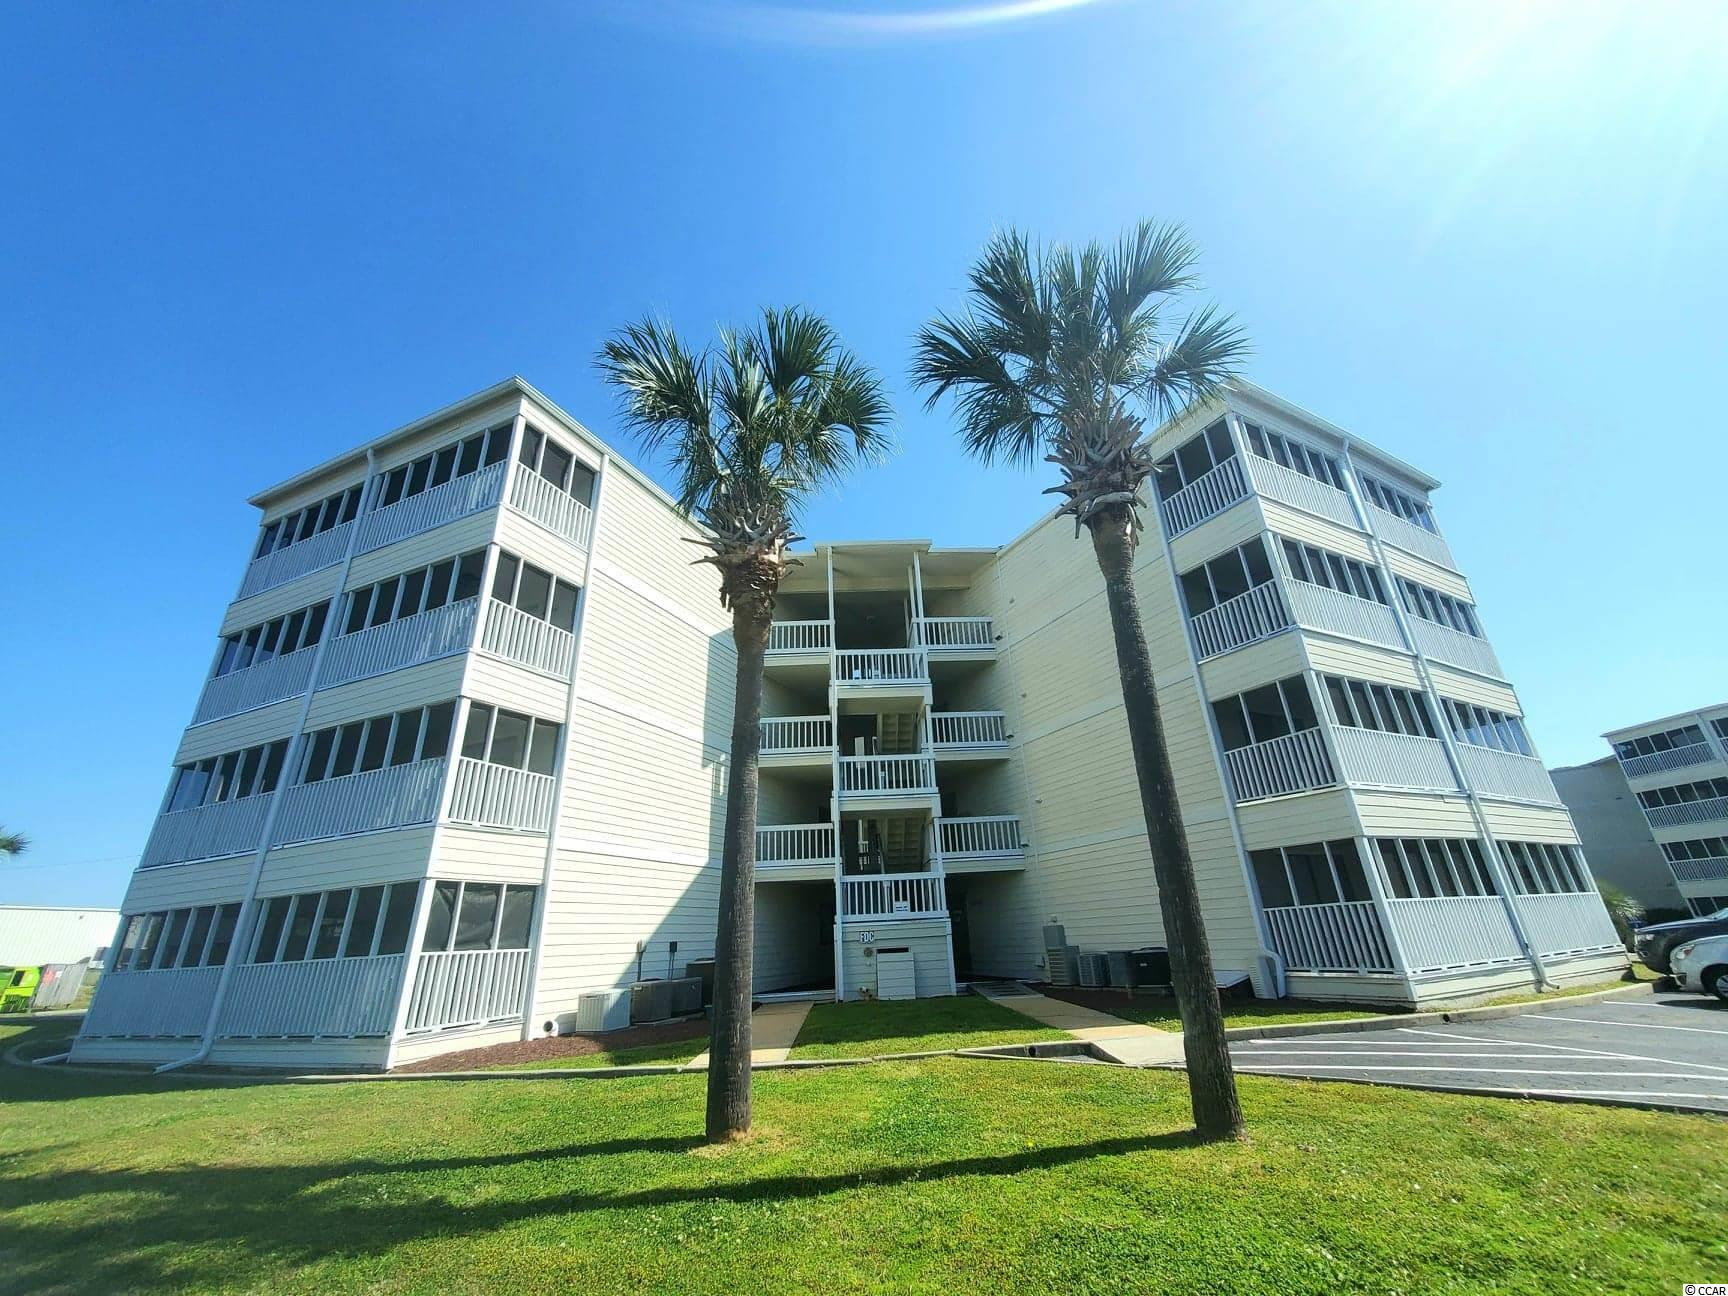 This is a unit for anyone looking for a peaceful lifestyle near the Intracoastal Waterway. Intercoastal Village is an excellent place for full time residents to enjoy a social lifestyle surrounded by neighbors as well as the peaceful one bedroom unit. This condo would also make a great vacation home and is situated in the heart of Little River with quick access to the best shopping, dining and entertainment attractions of North Myrtle Beach. Schedule a showing today and make this unit your own!